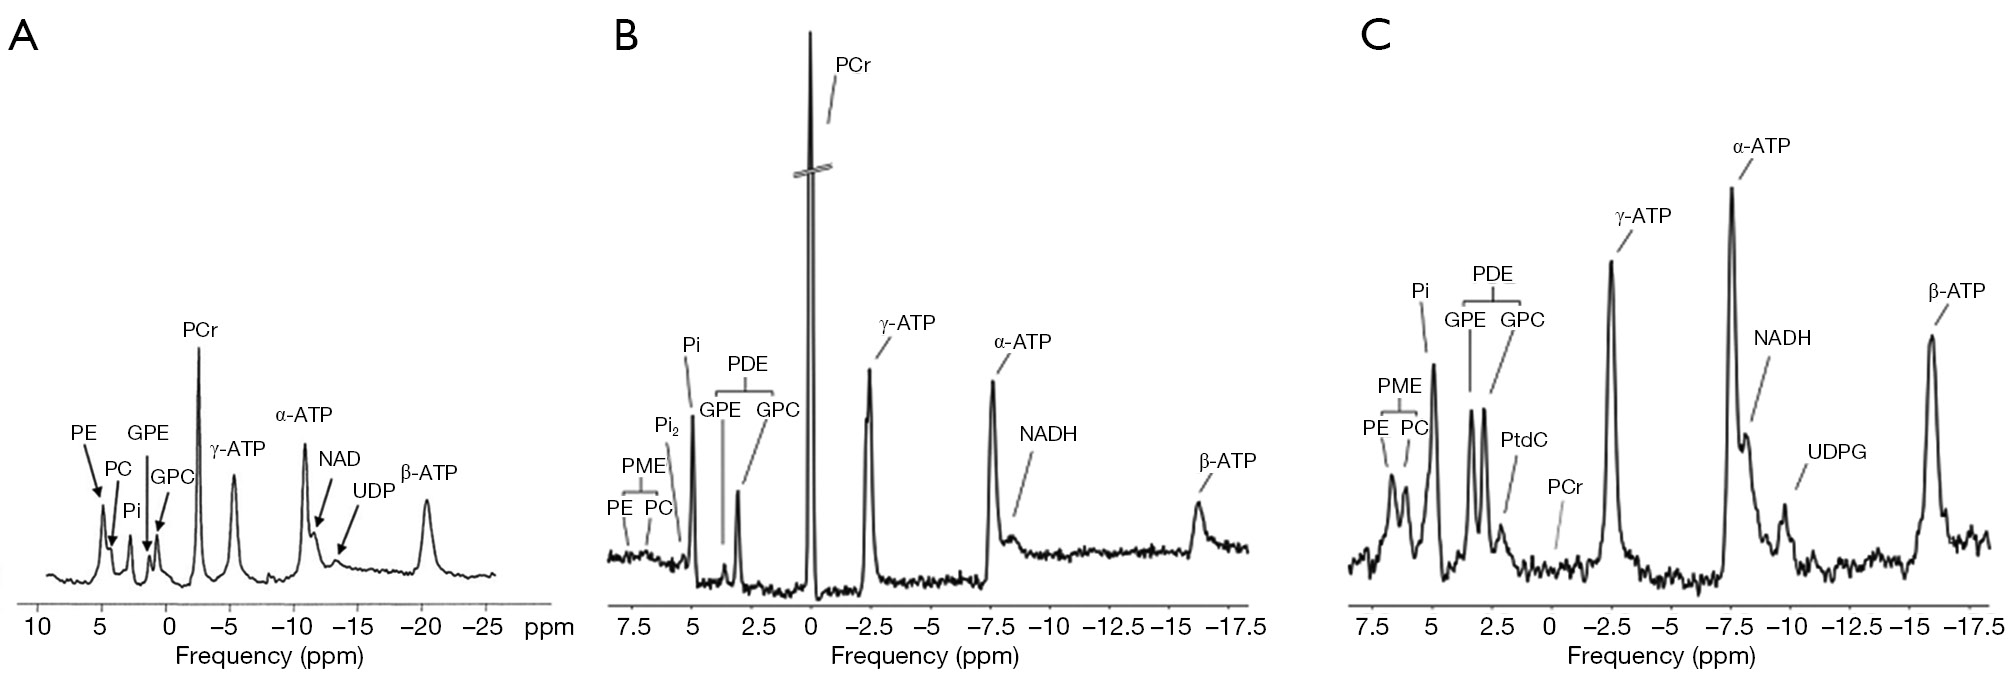 Assessing Tissue Metabolism By Phosphorous 31 Magnetic Resonance Todd Engineering Schematics Figure 2 Representative 31p Spectra From Human Brain A Skeletal Muscle B And Liver C Reproduced With Permission Lei Et Al